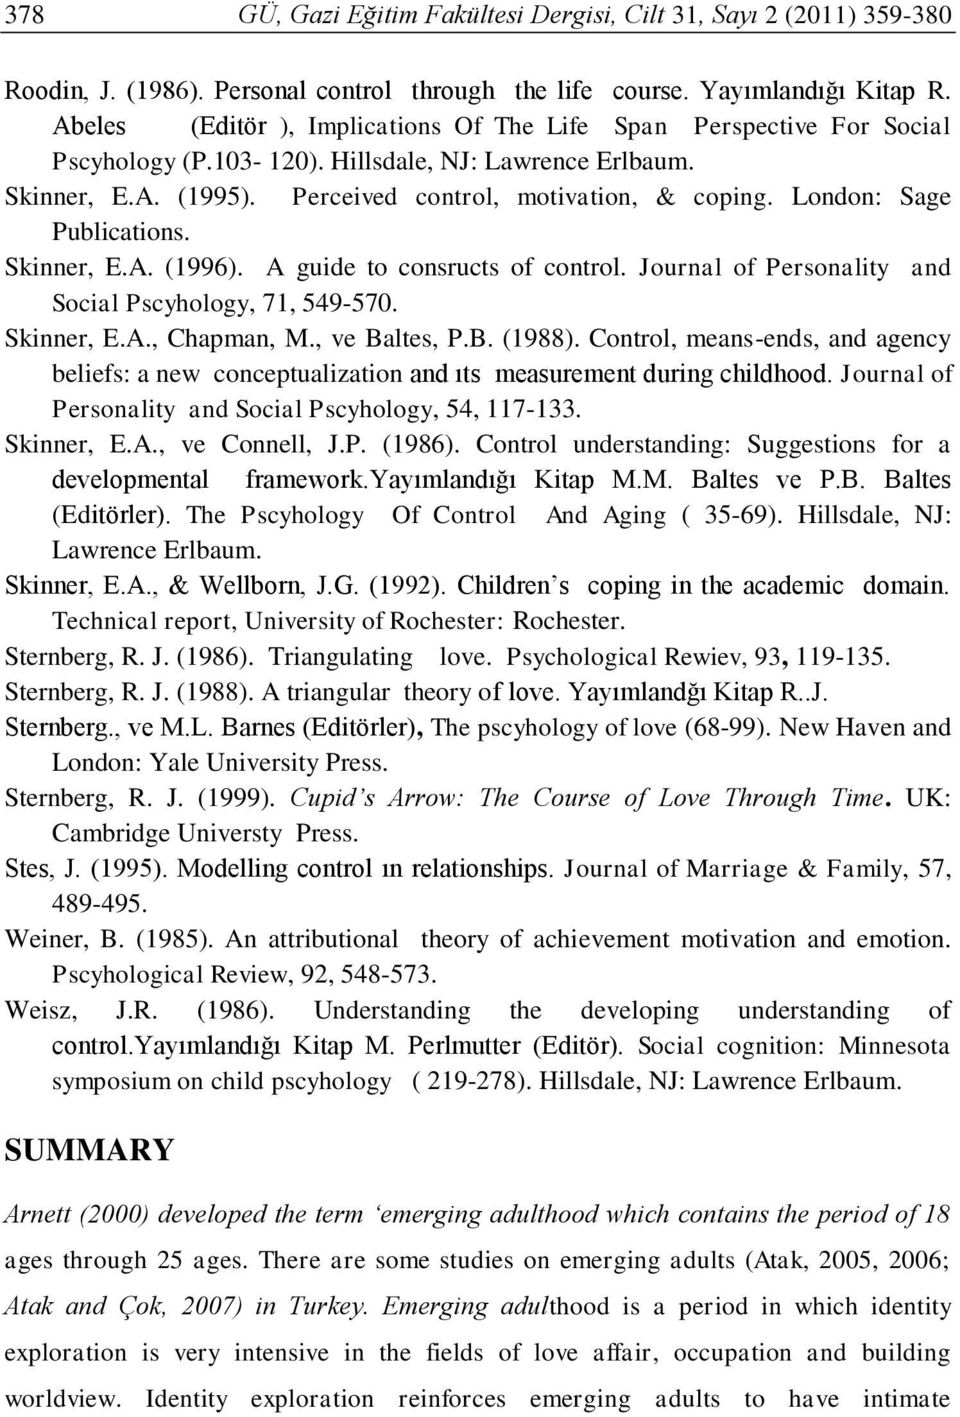 London: Sage Publications. Skinner, E.A. (1996). A guide to consructs of control. Journal of Personality and Social Pscyhology, 71, 549-570. Skinner, E.A., Chapman, M., ve Baltes, P.B. (1988).